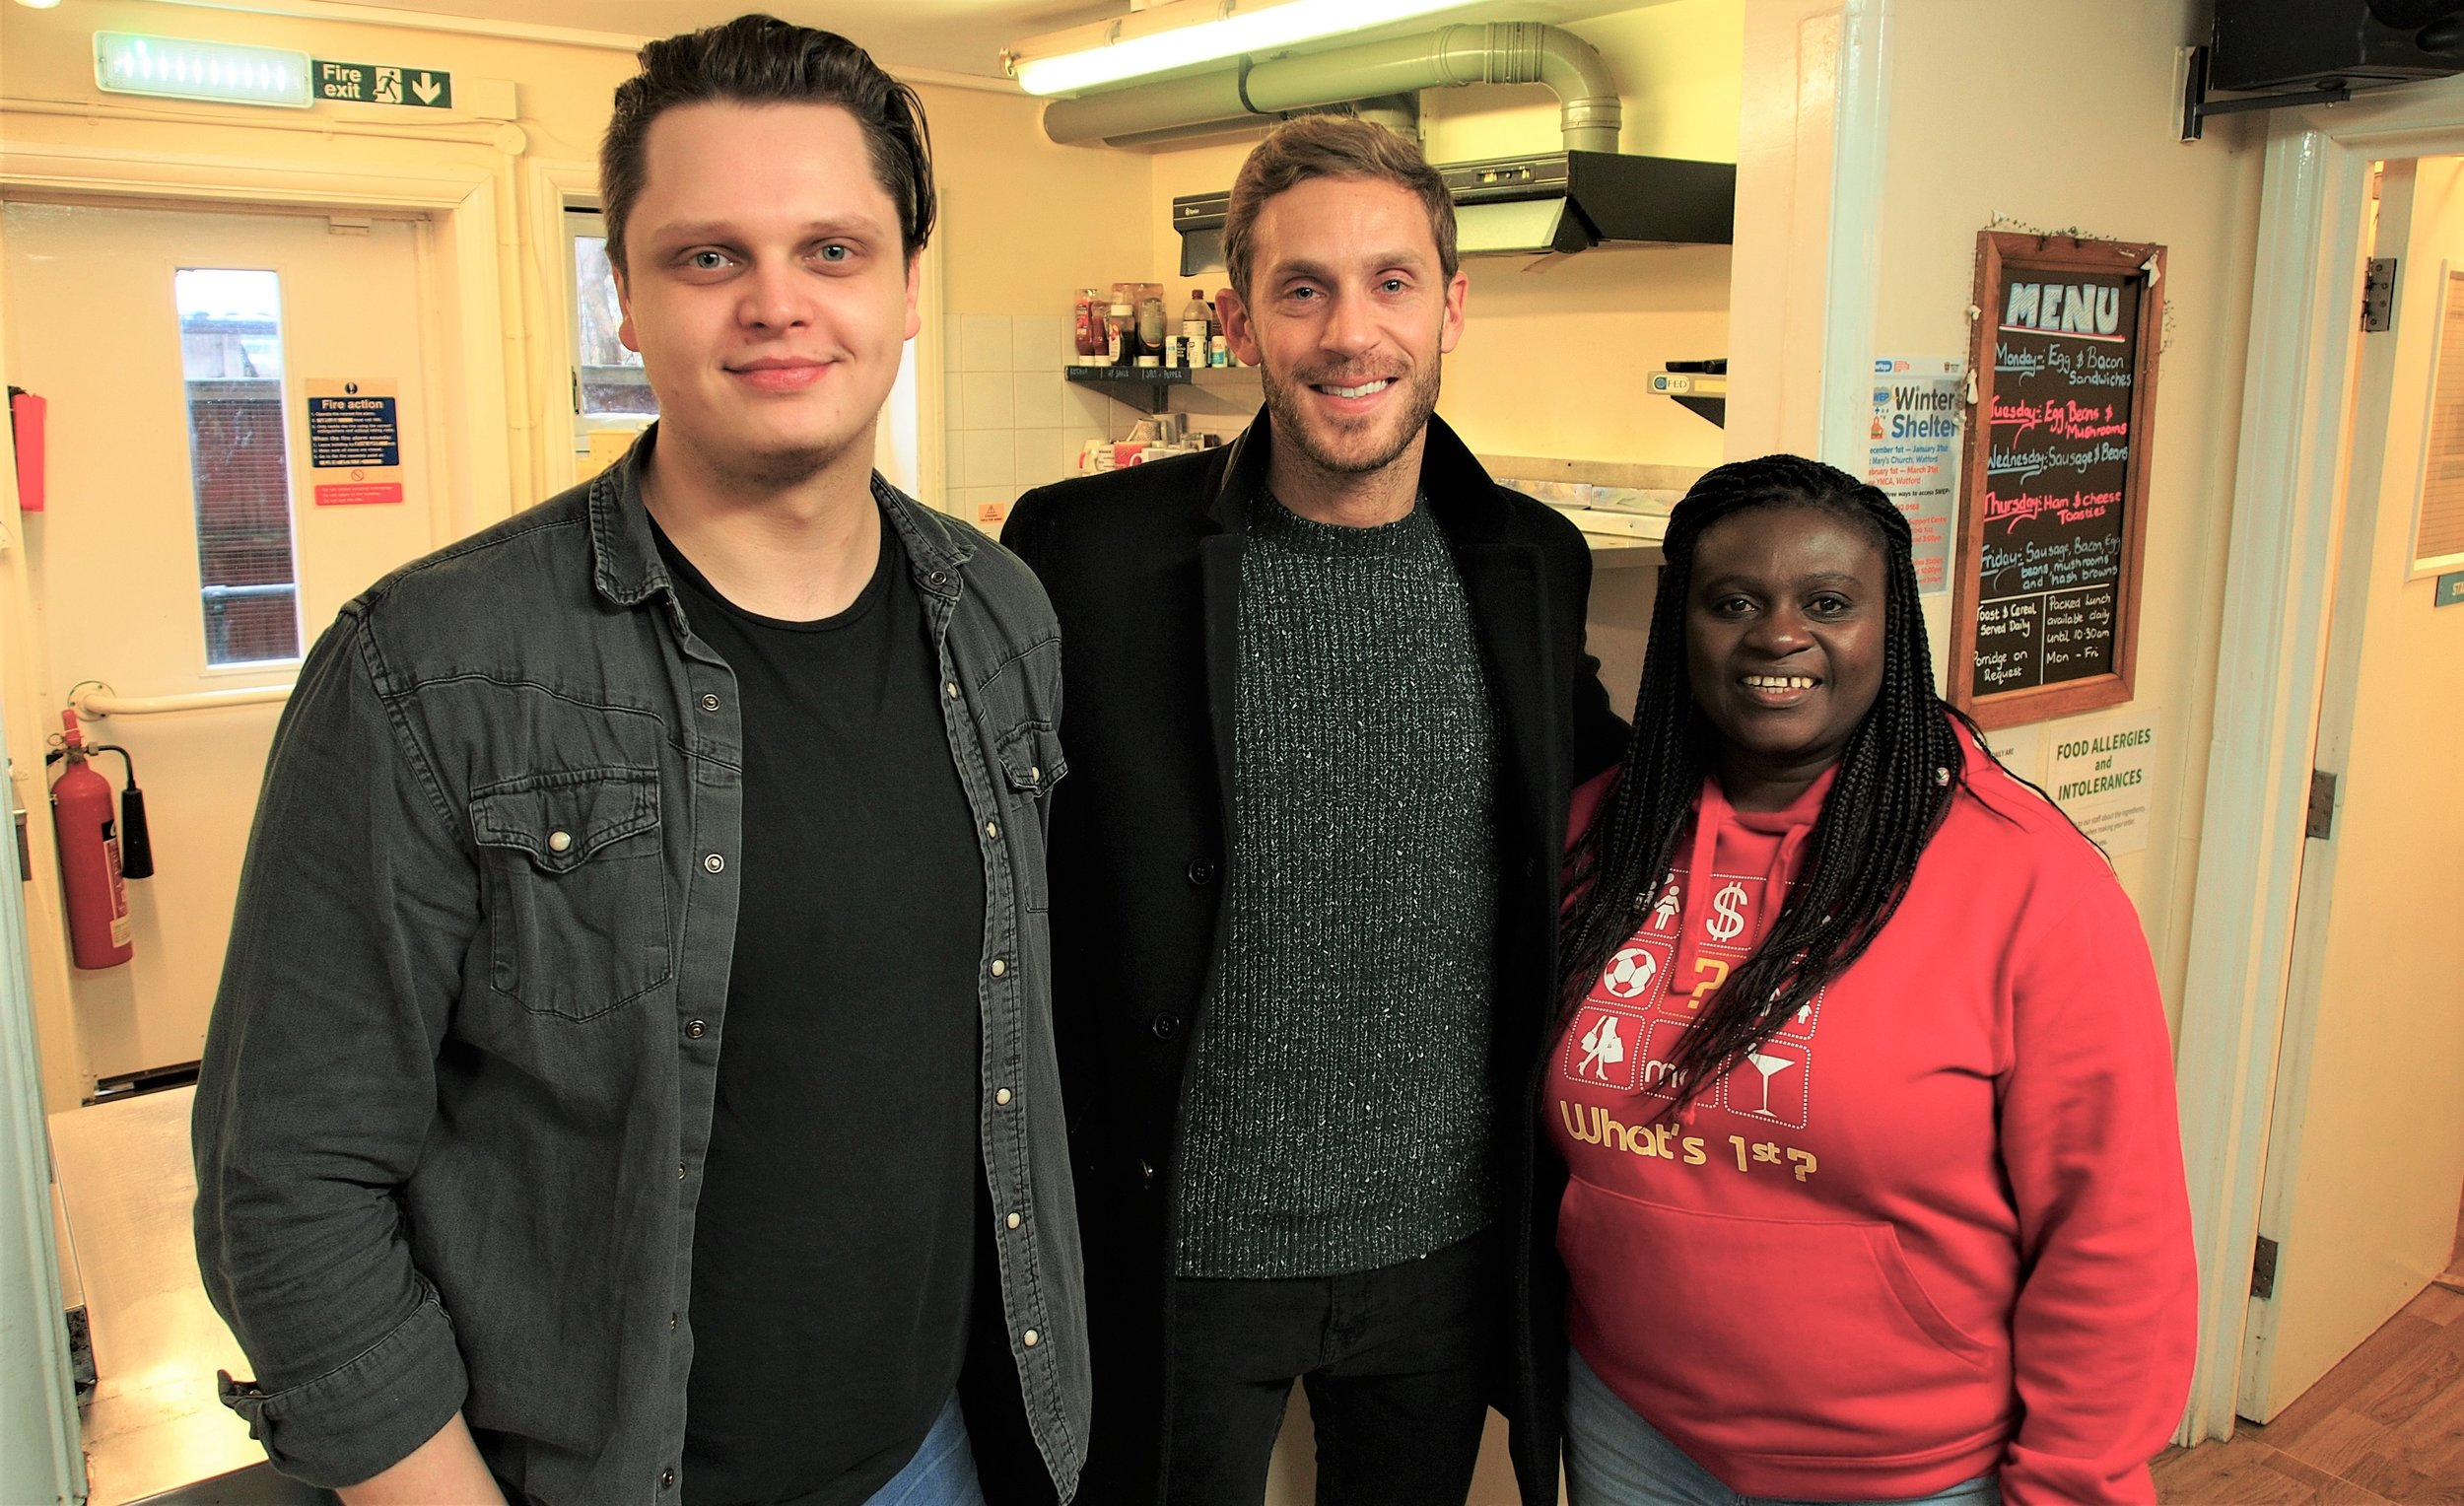 Sam (Fundraising & Communications), Josh (GS8), and Prisca (TST) at the Haven Support Centre